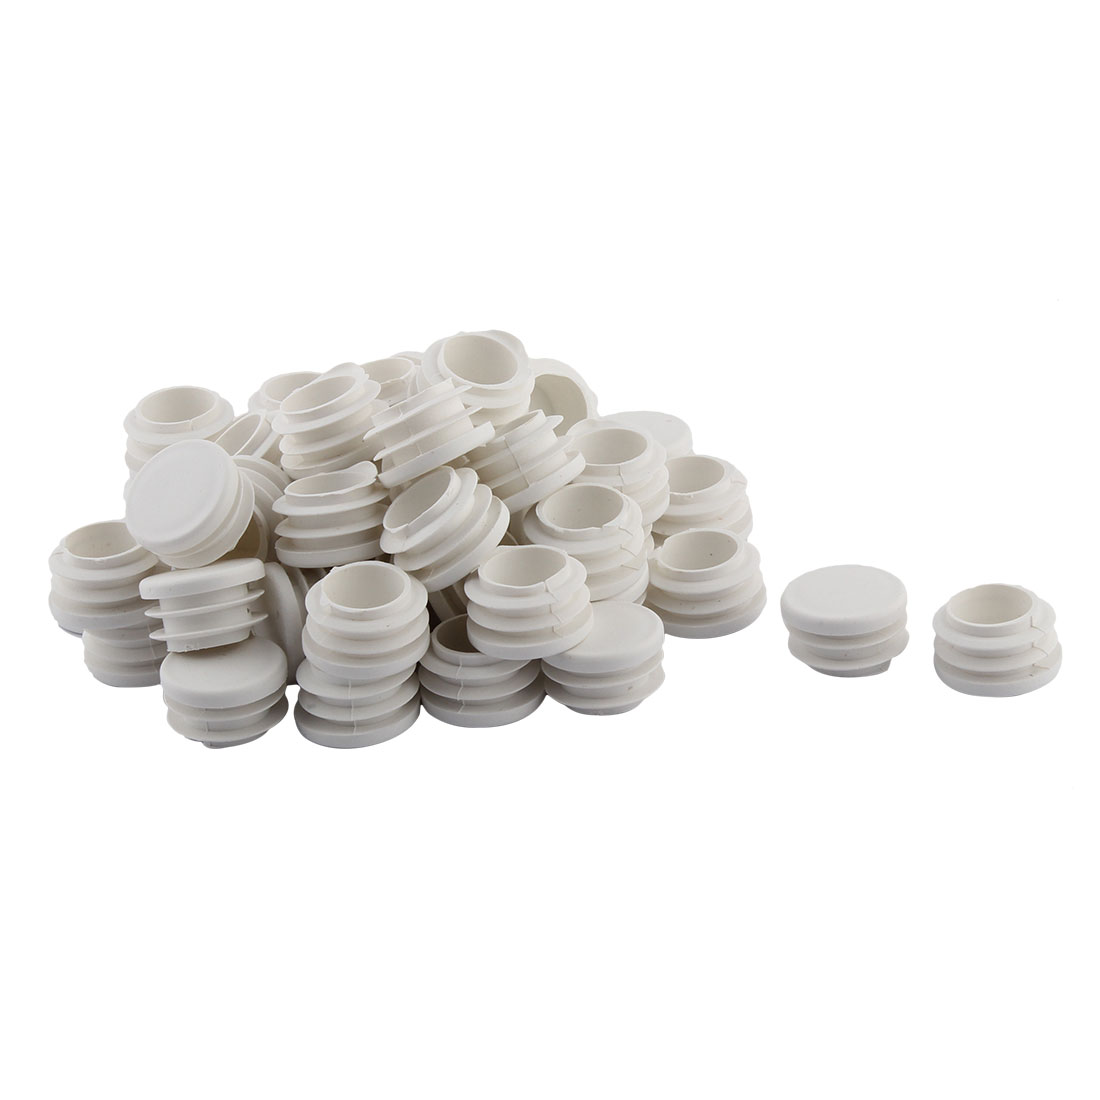 Home Office Plastic Round Shaped Table Chair Leg Tube Pipe Insert White 28mm Dia 50 PCS